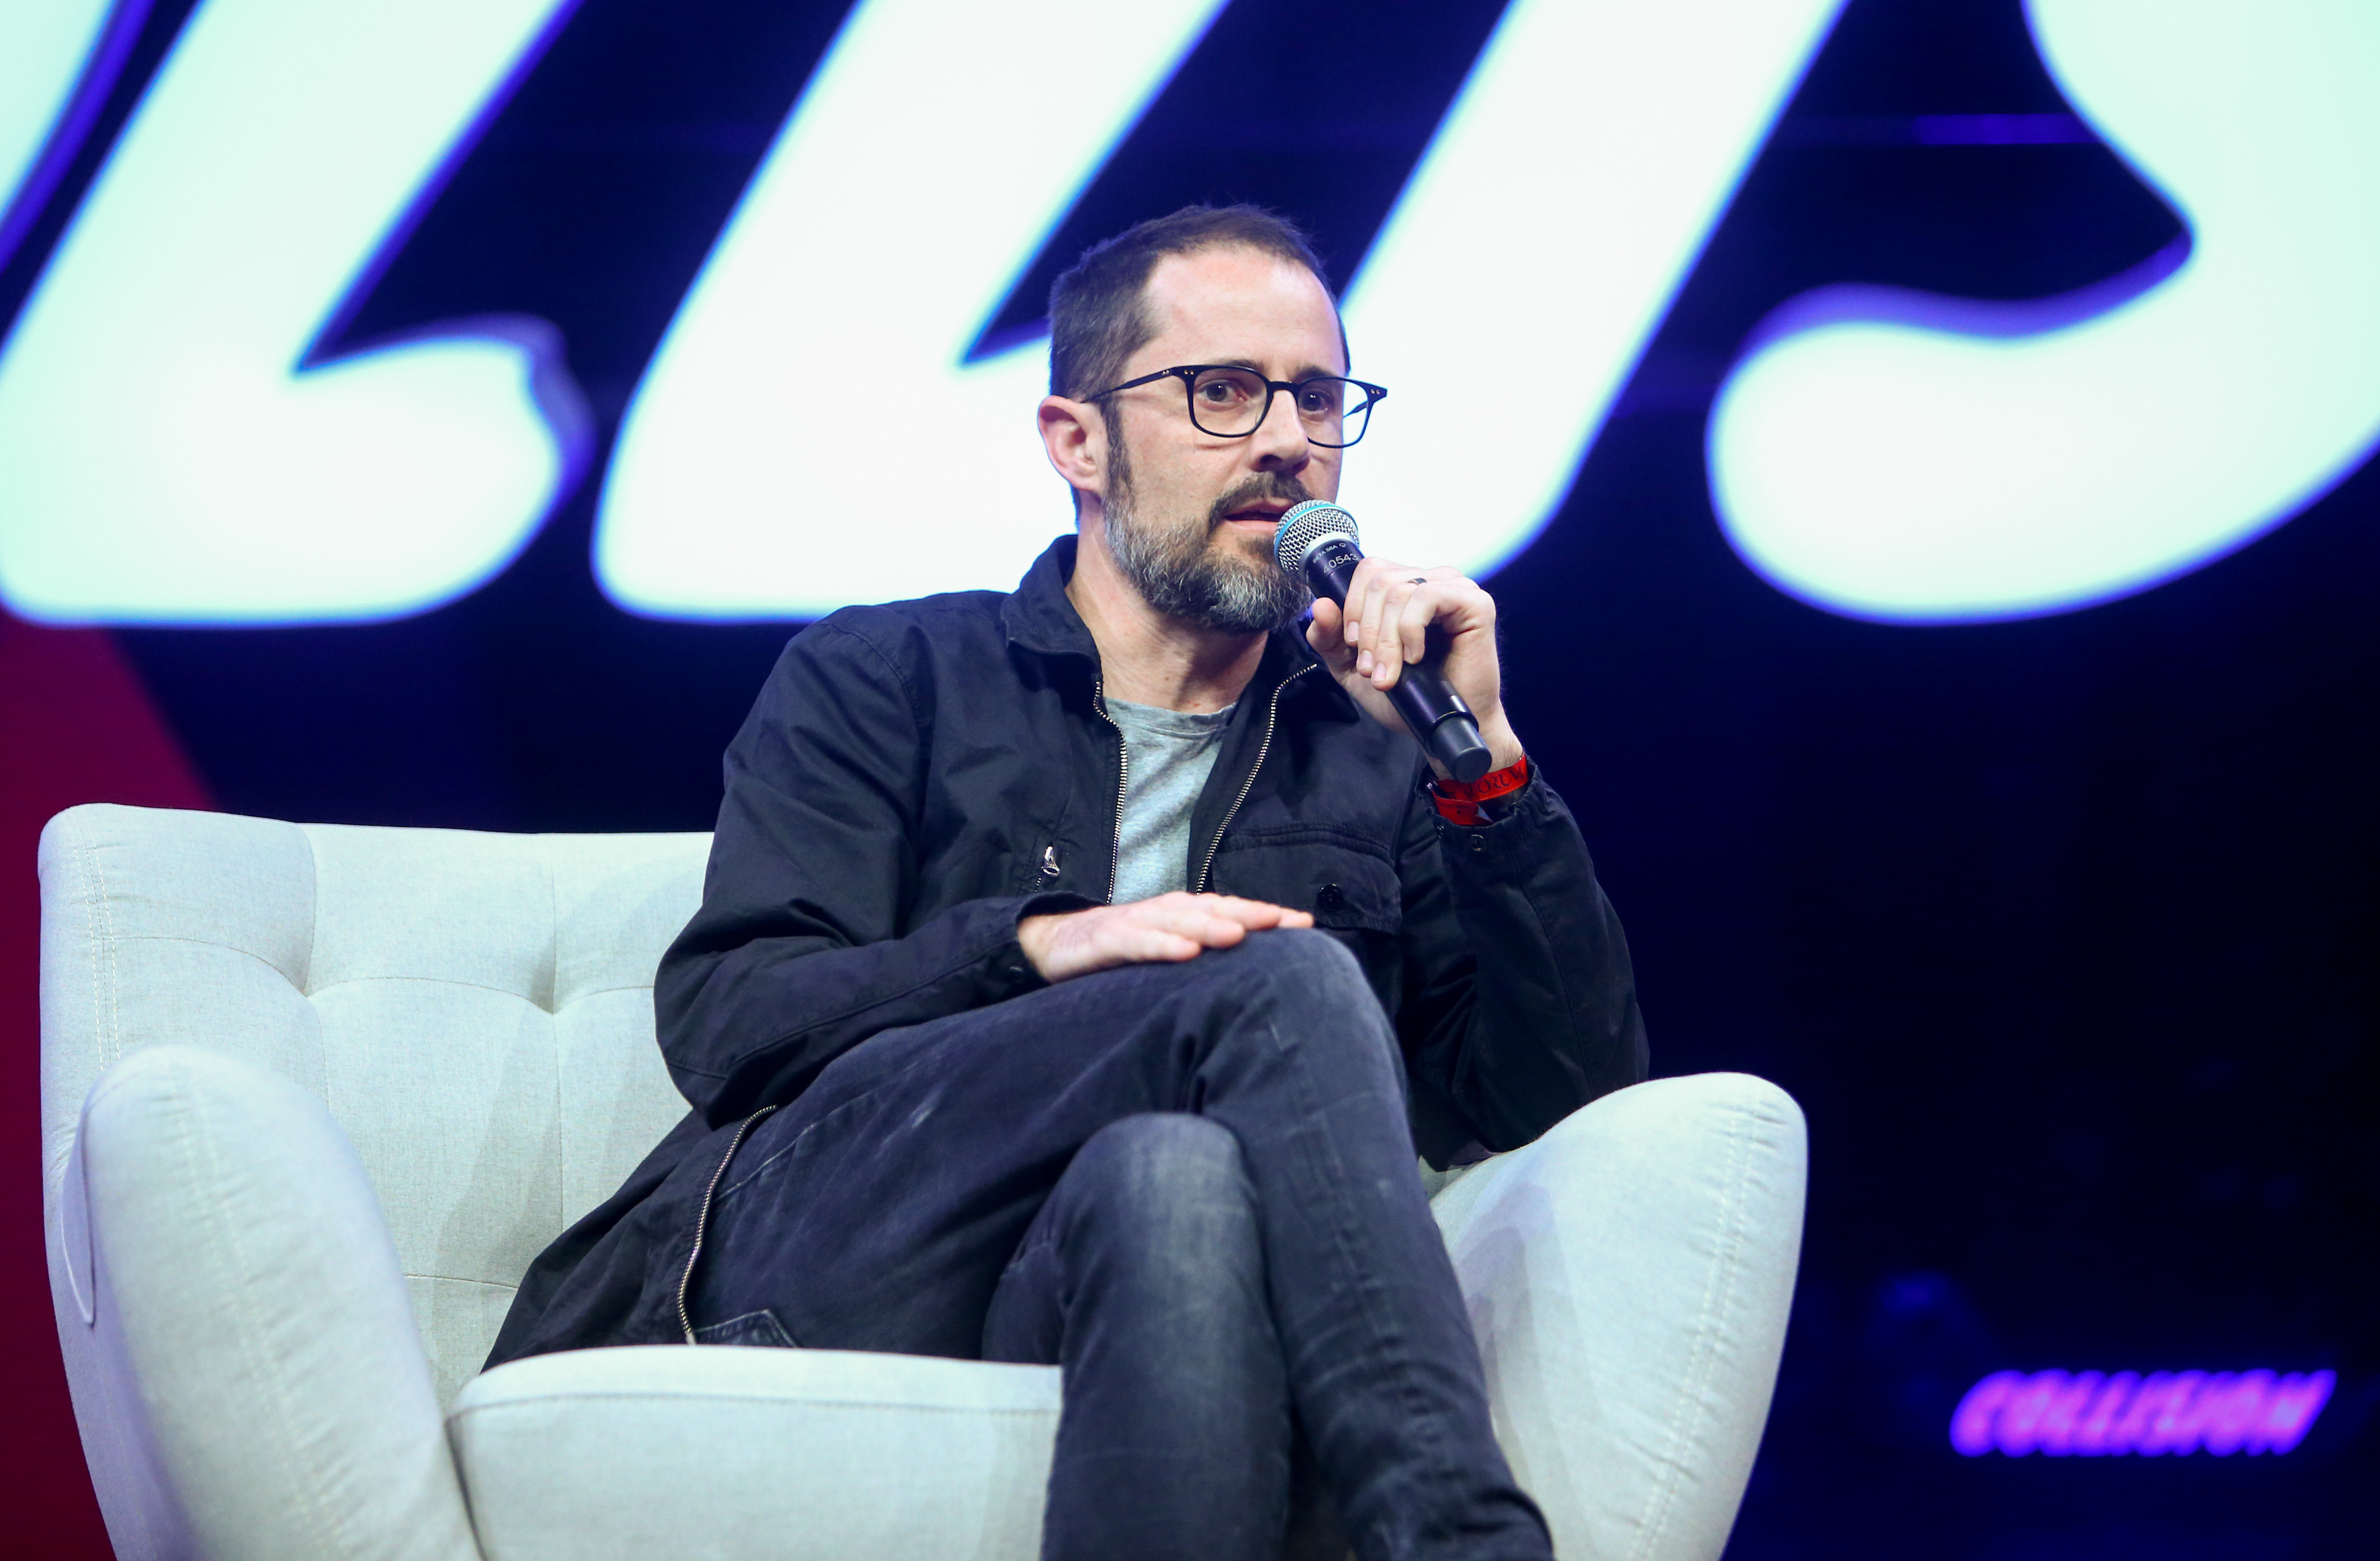 Medium CEO and Twitter co-founder Ev Williams